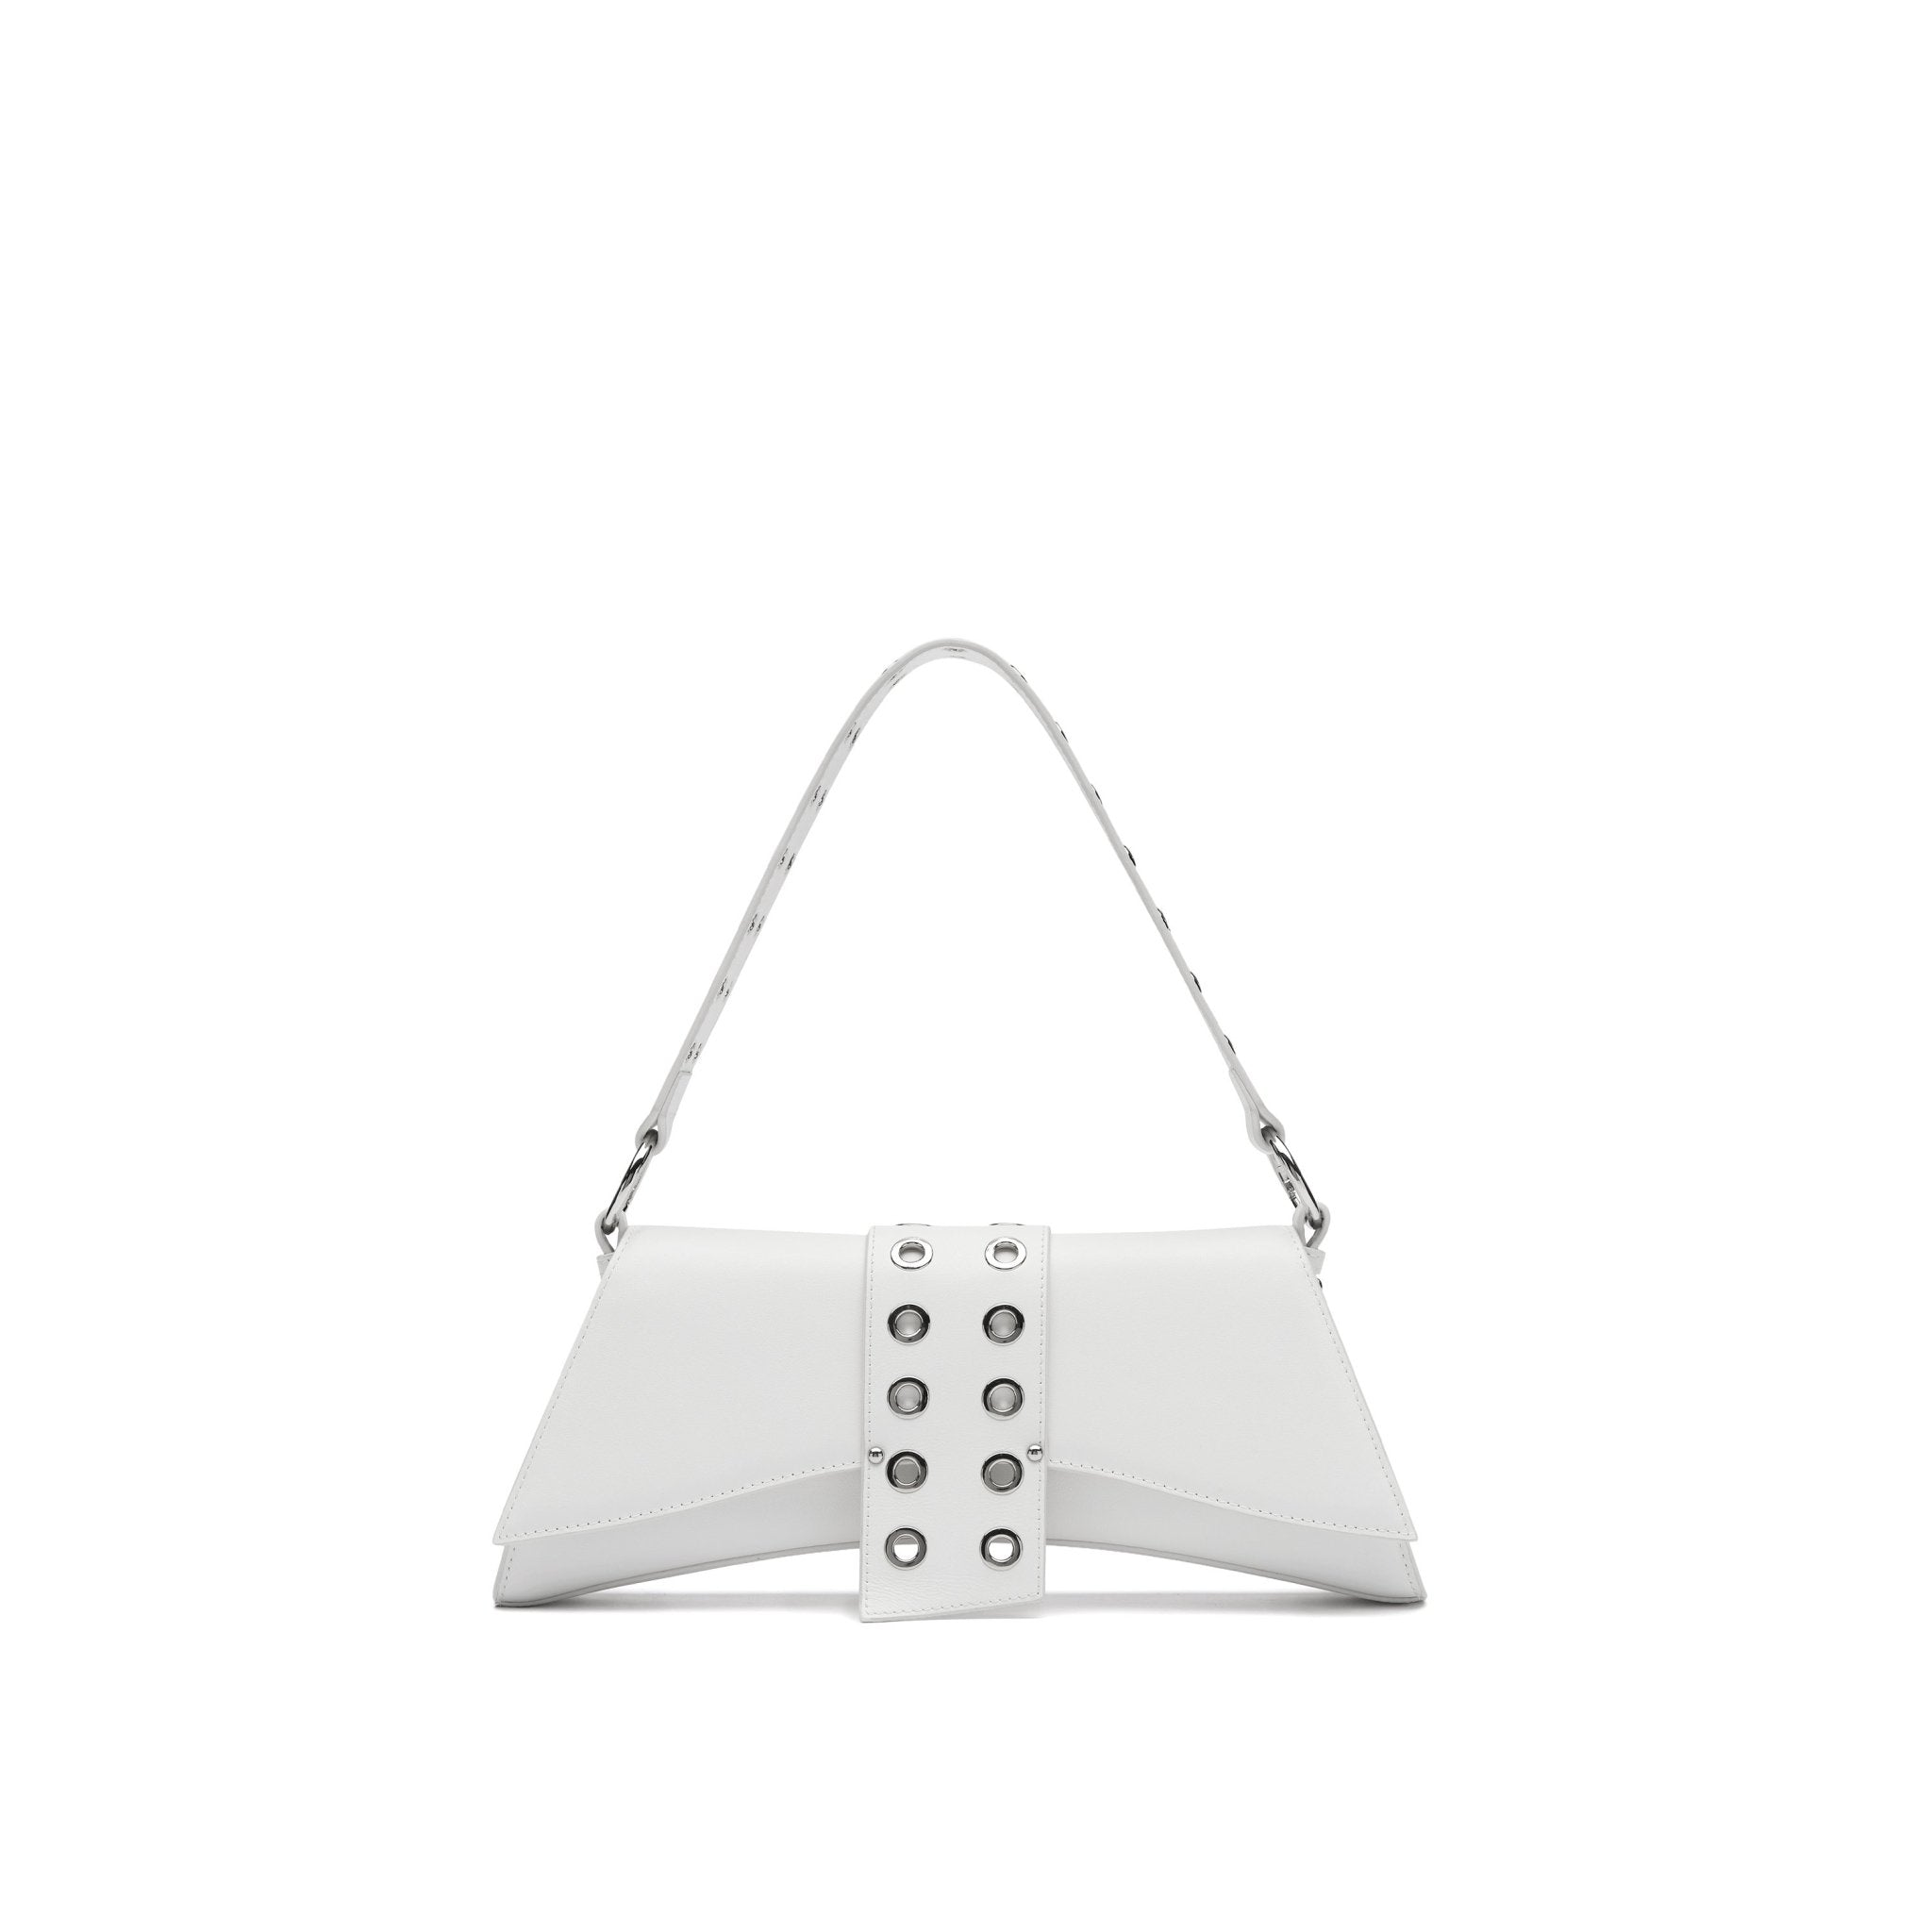 LOST IN ECHO White Barrett Metal Chain Shoulder Bag Large | MADA IN CHINA